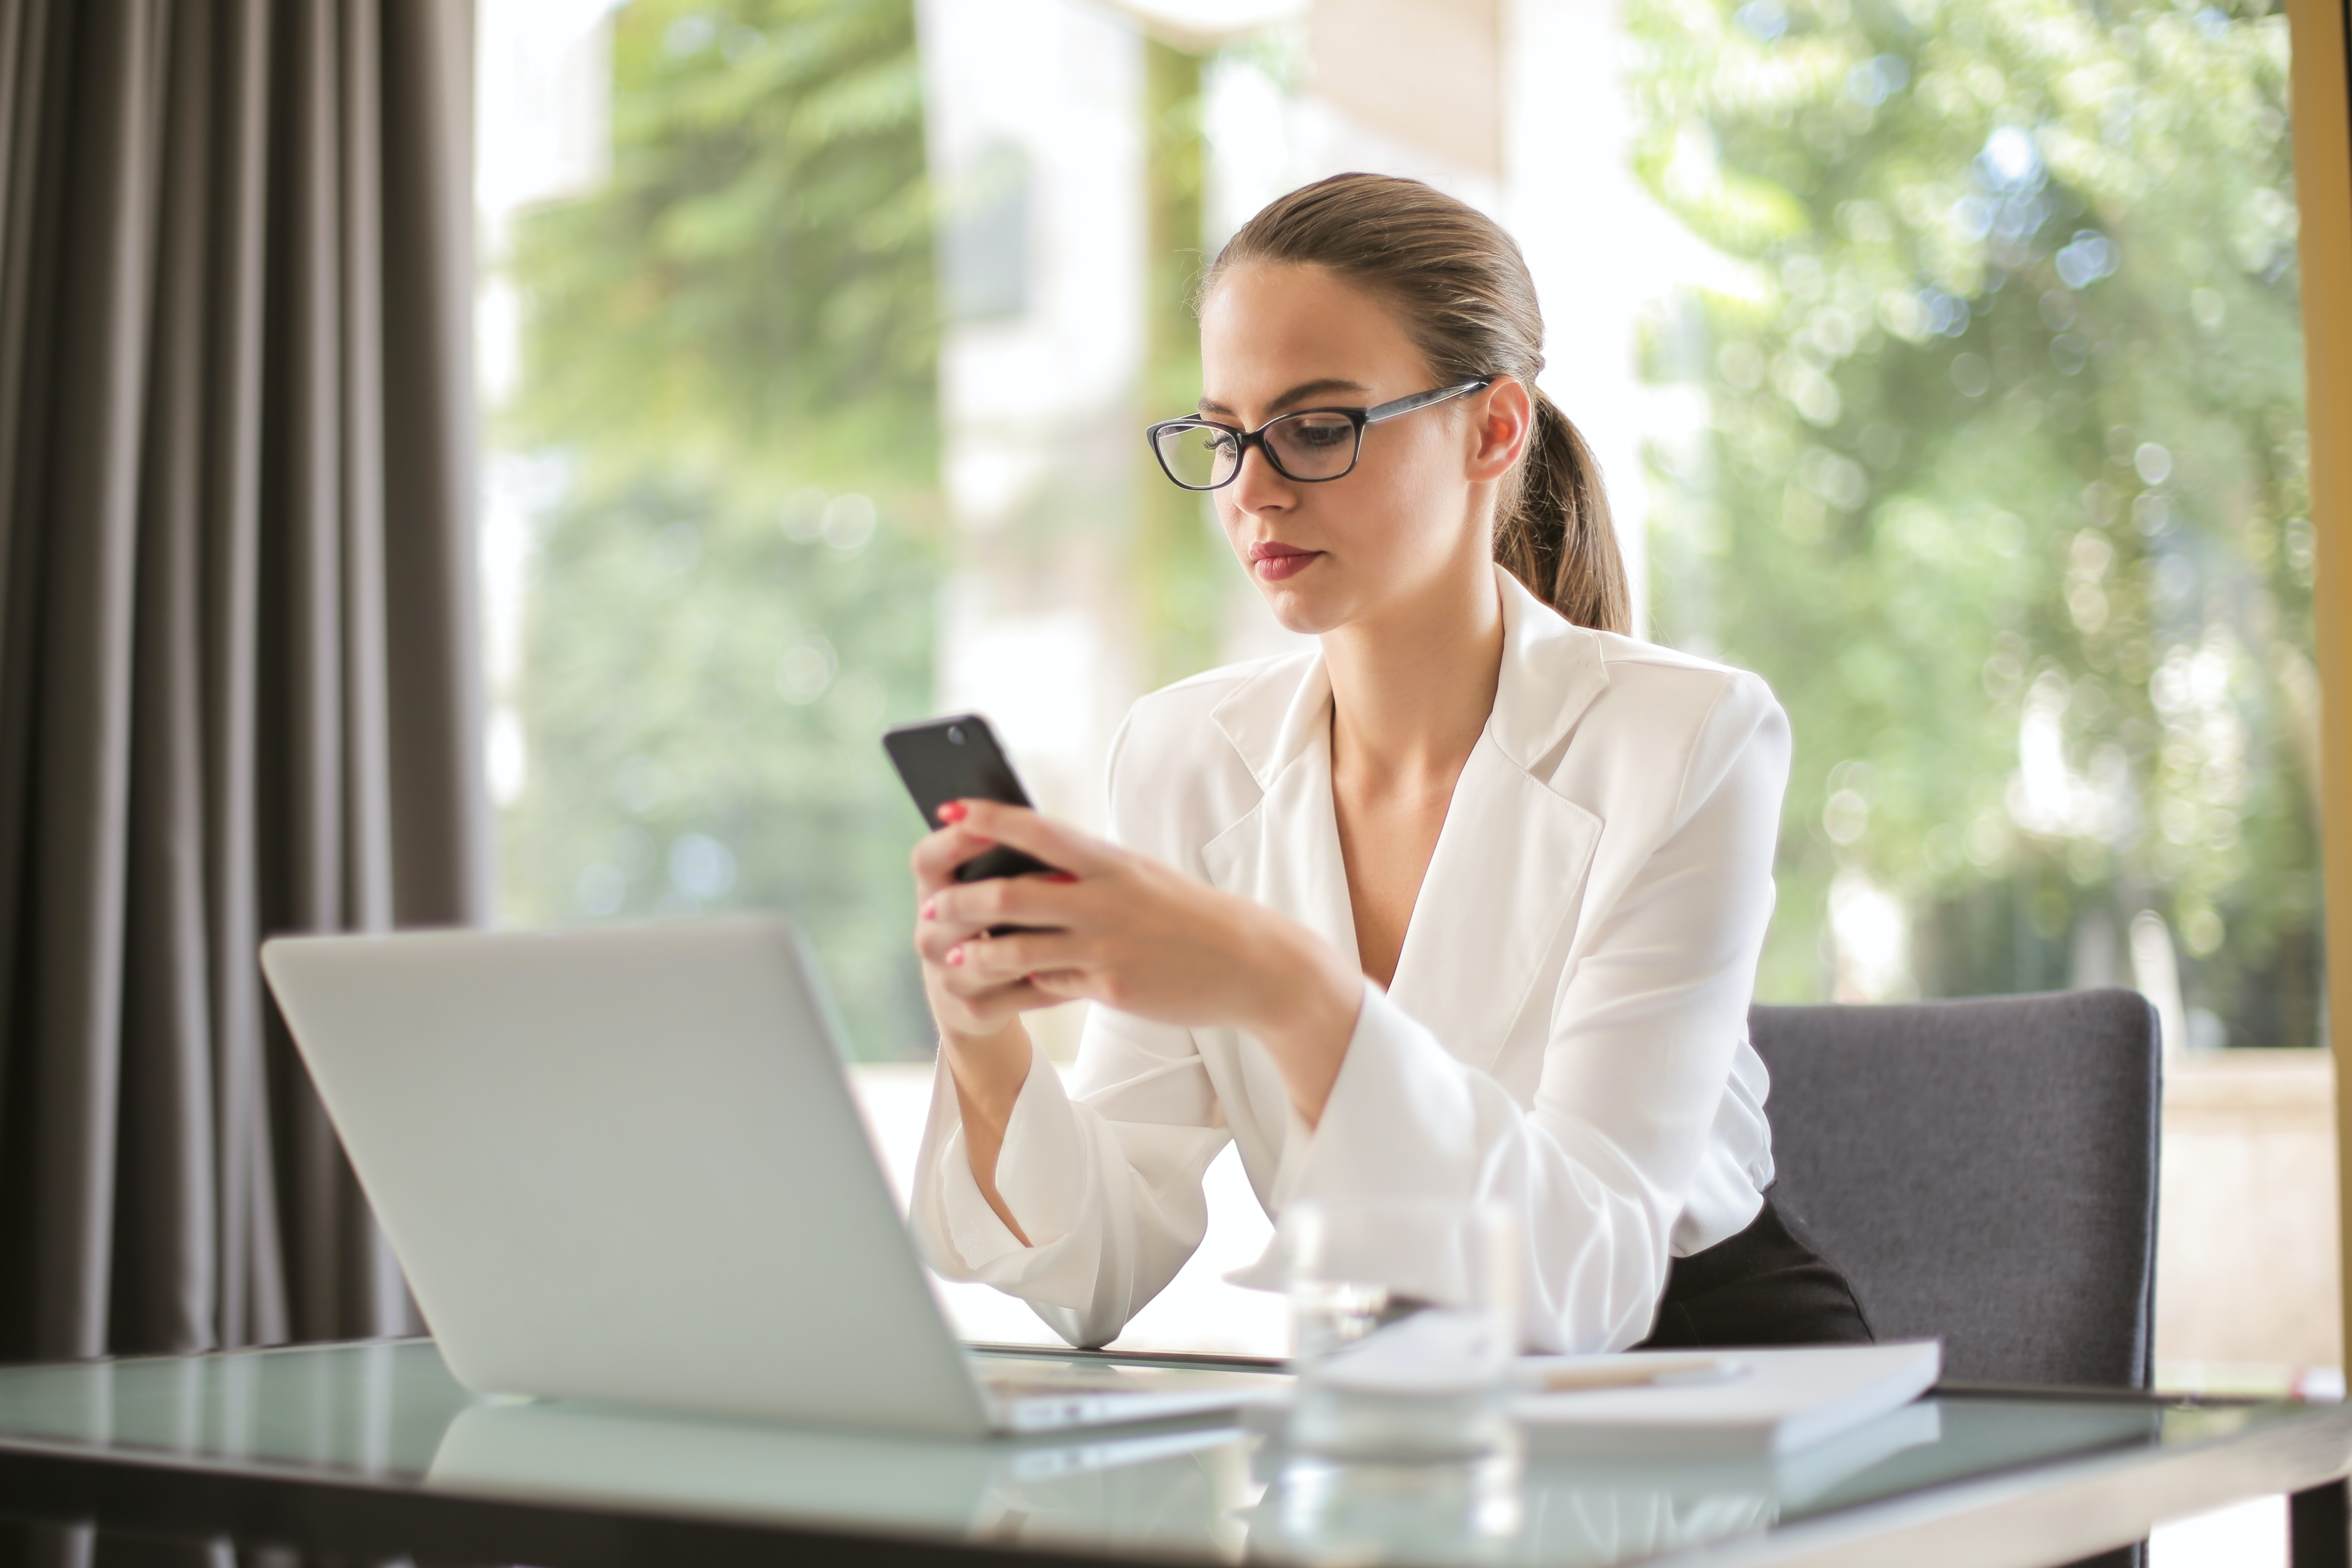 Which Is The Best Way To Remind Your Clients About Appointments: Text Message or Voice Calls?